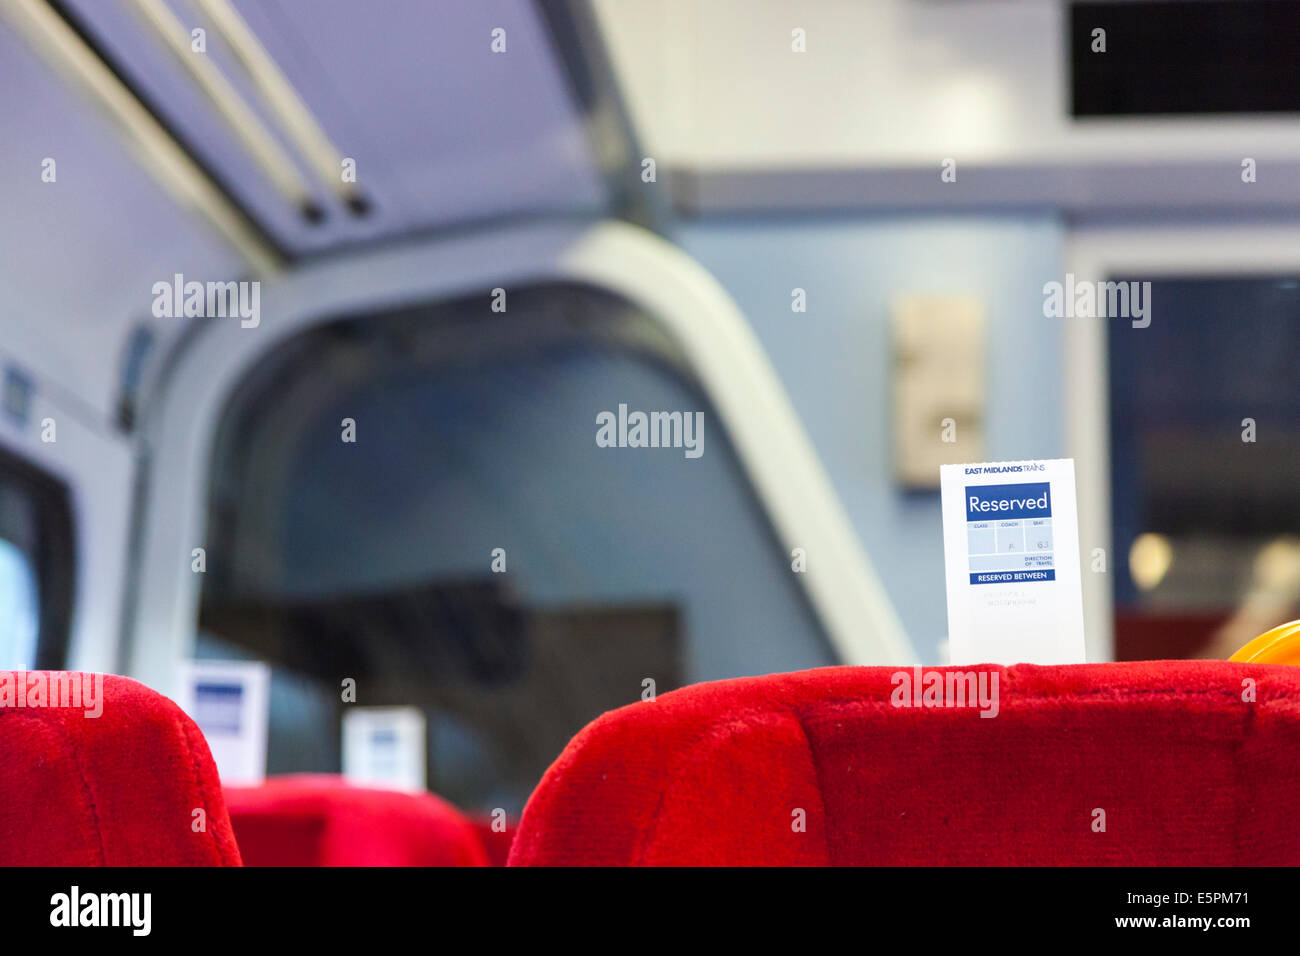 Train reservation ticket attached to the back of seating for a reserved seat on an East Midlands Trains train, England, - Stock Image